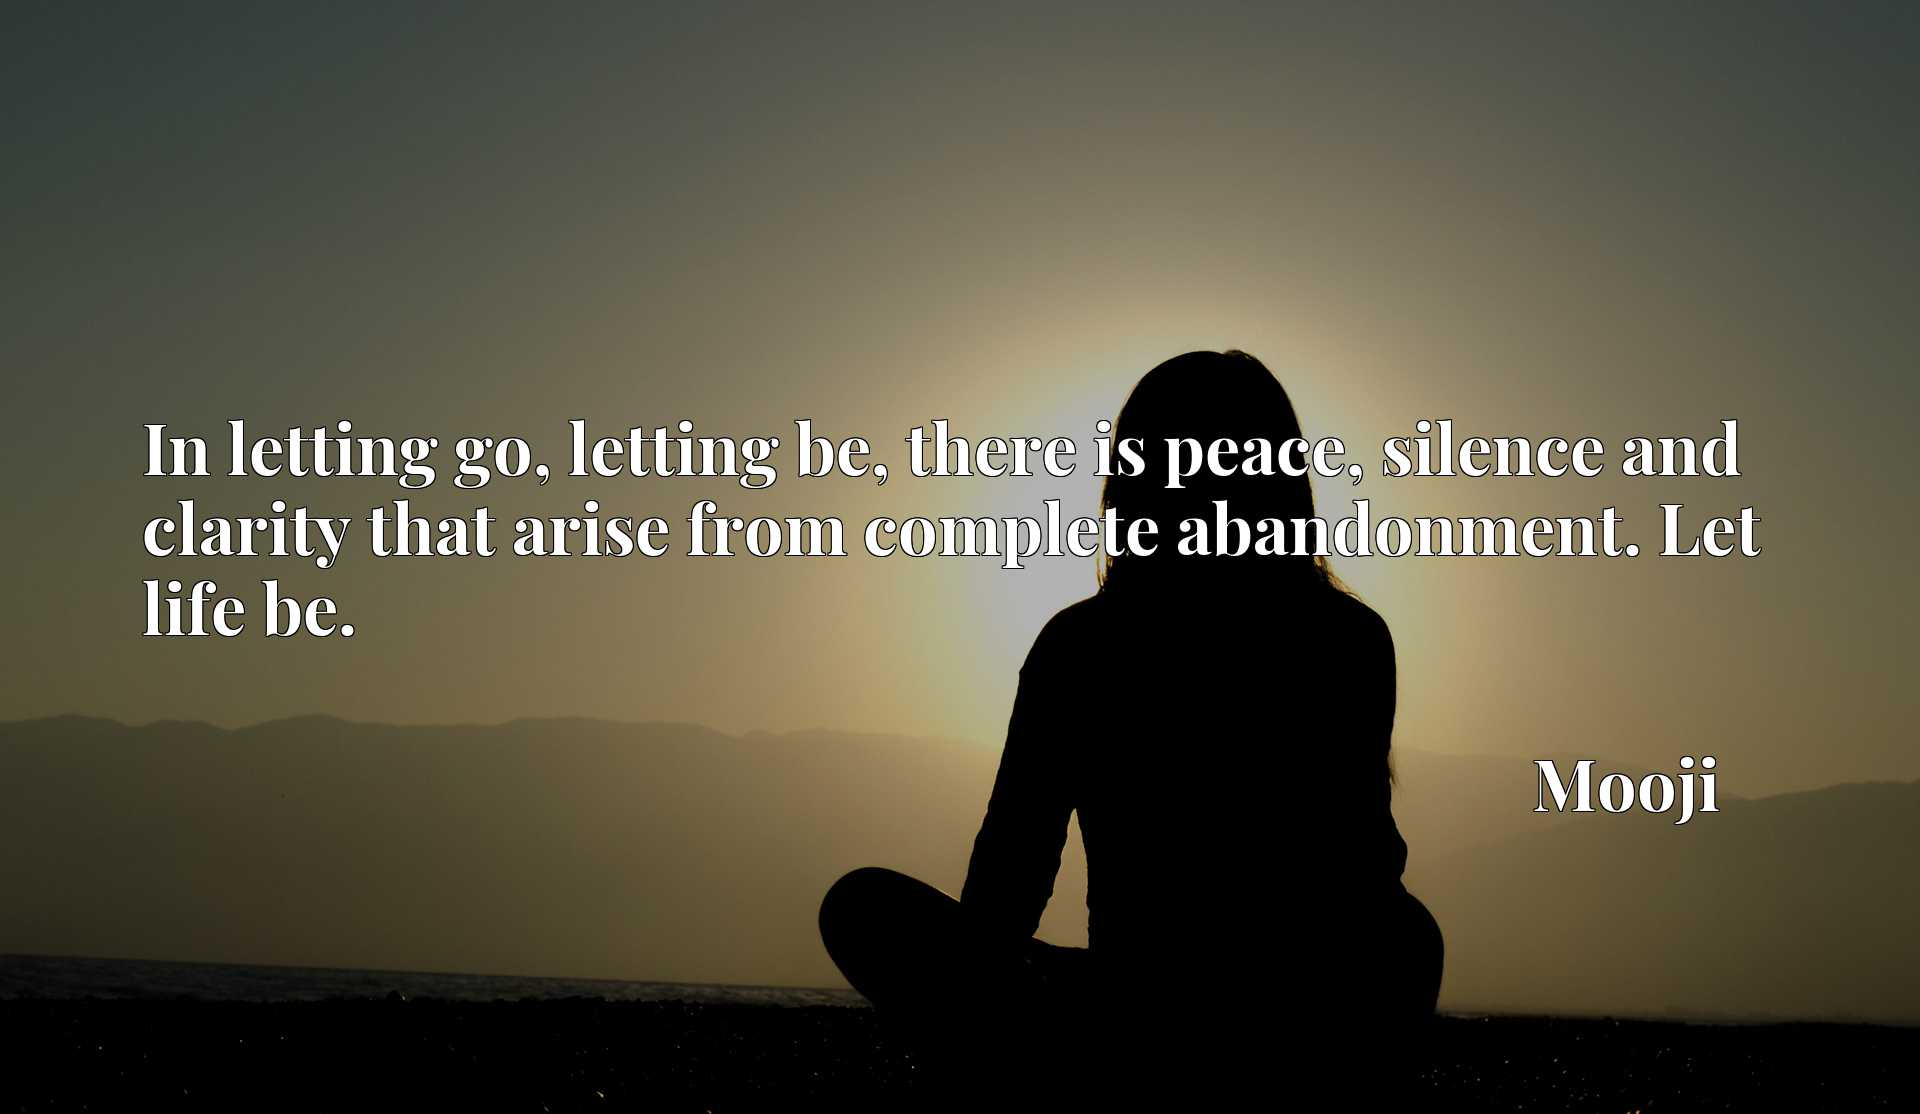 In letting go, letting be, there is peace, silence and clarity that arise from complete abandonment. Let life be.